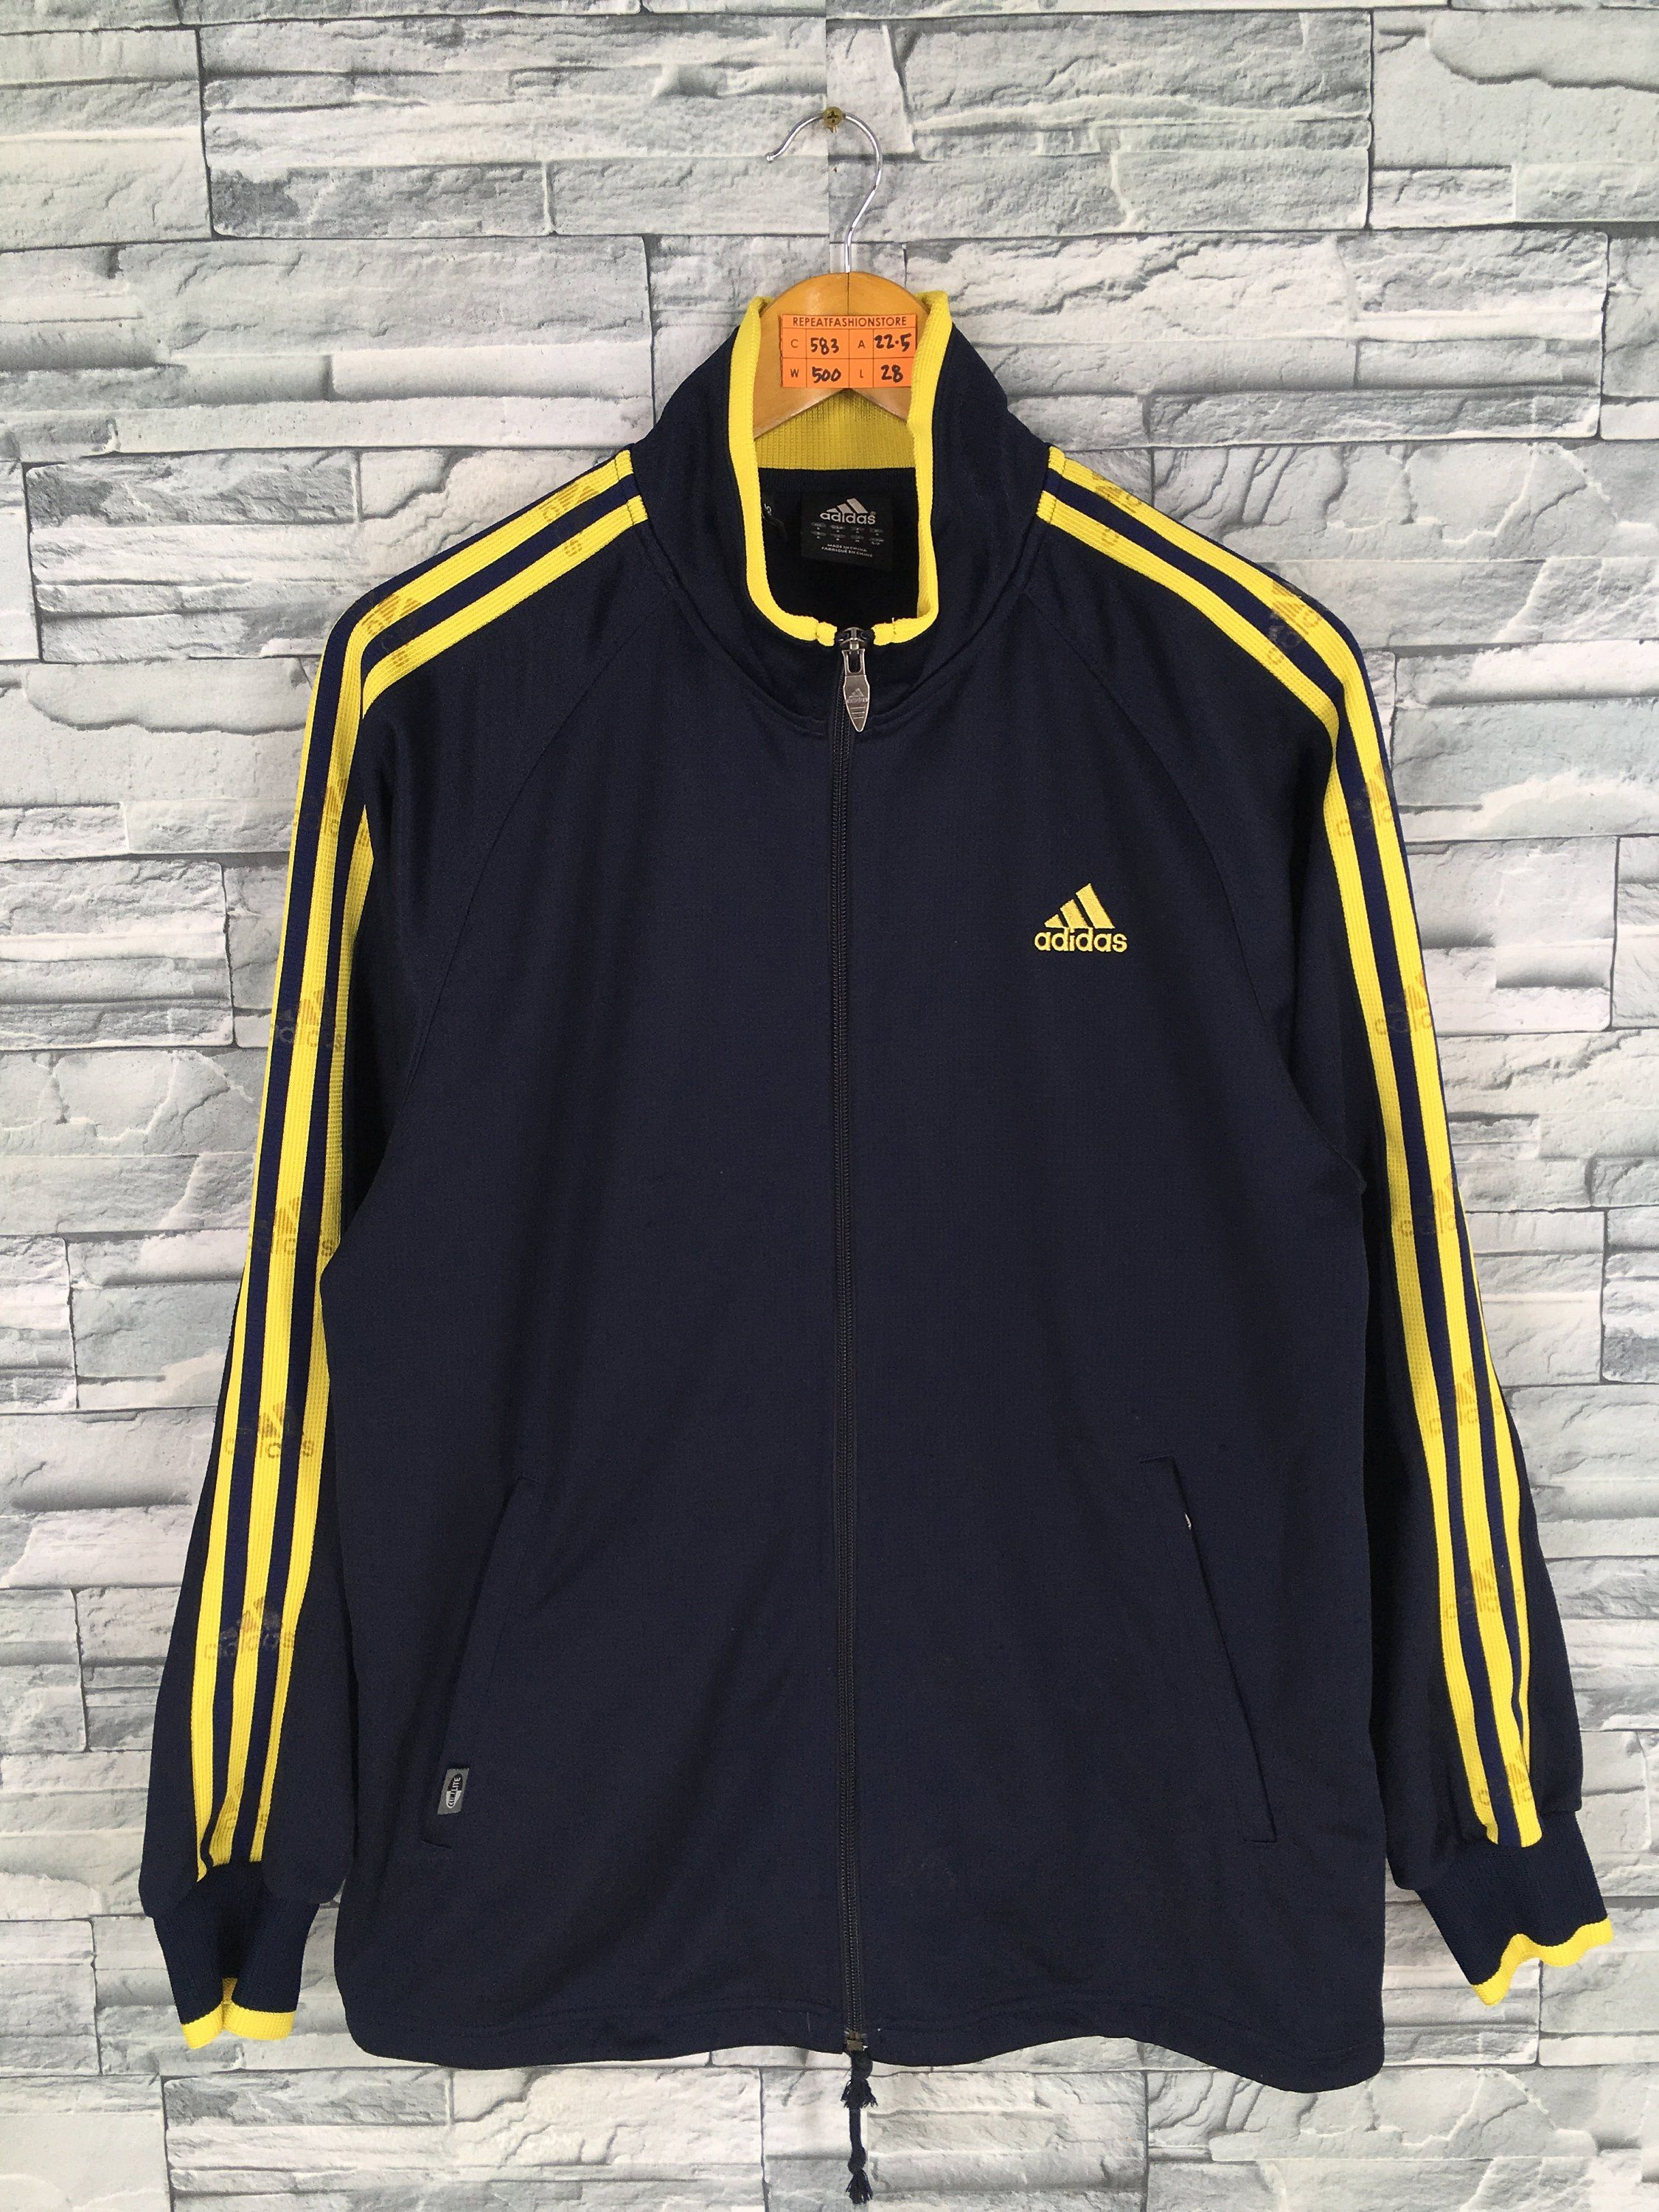 451e5d0d6c1b9 Vintage Adidas Track Top Mens Medium Vintage 90's Adidas Equipment ...